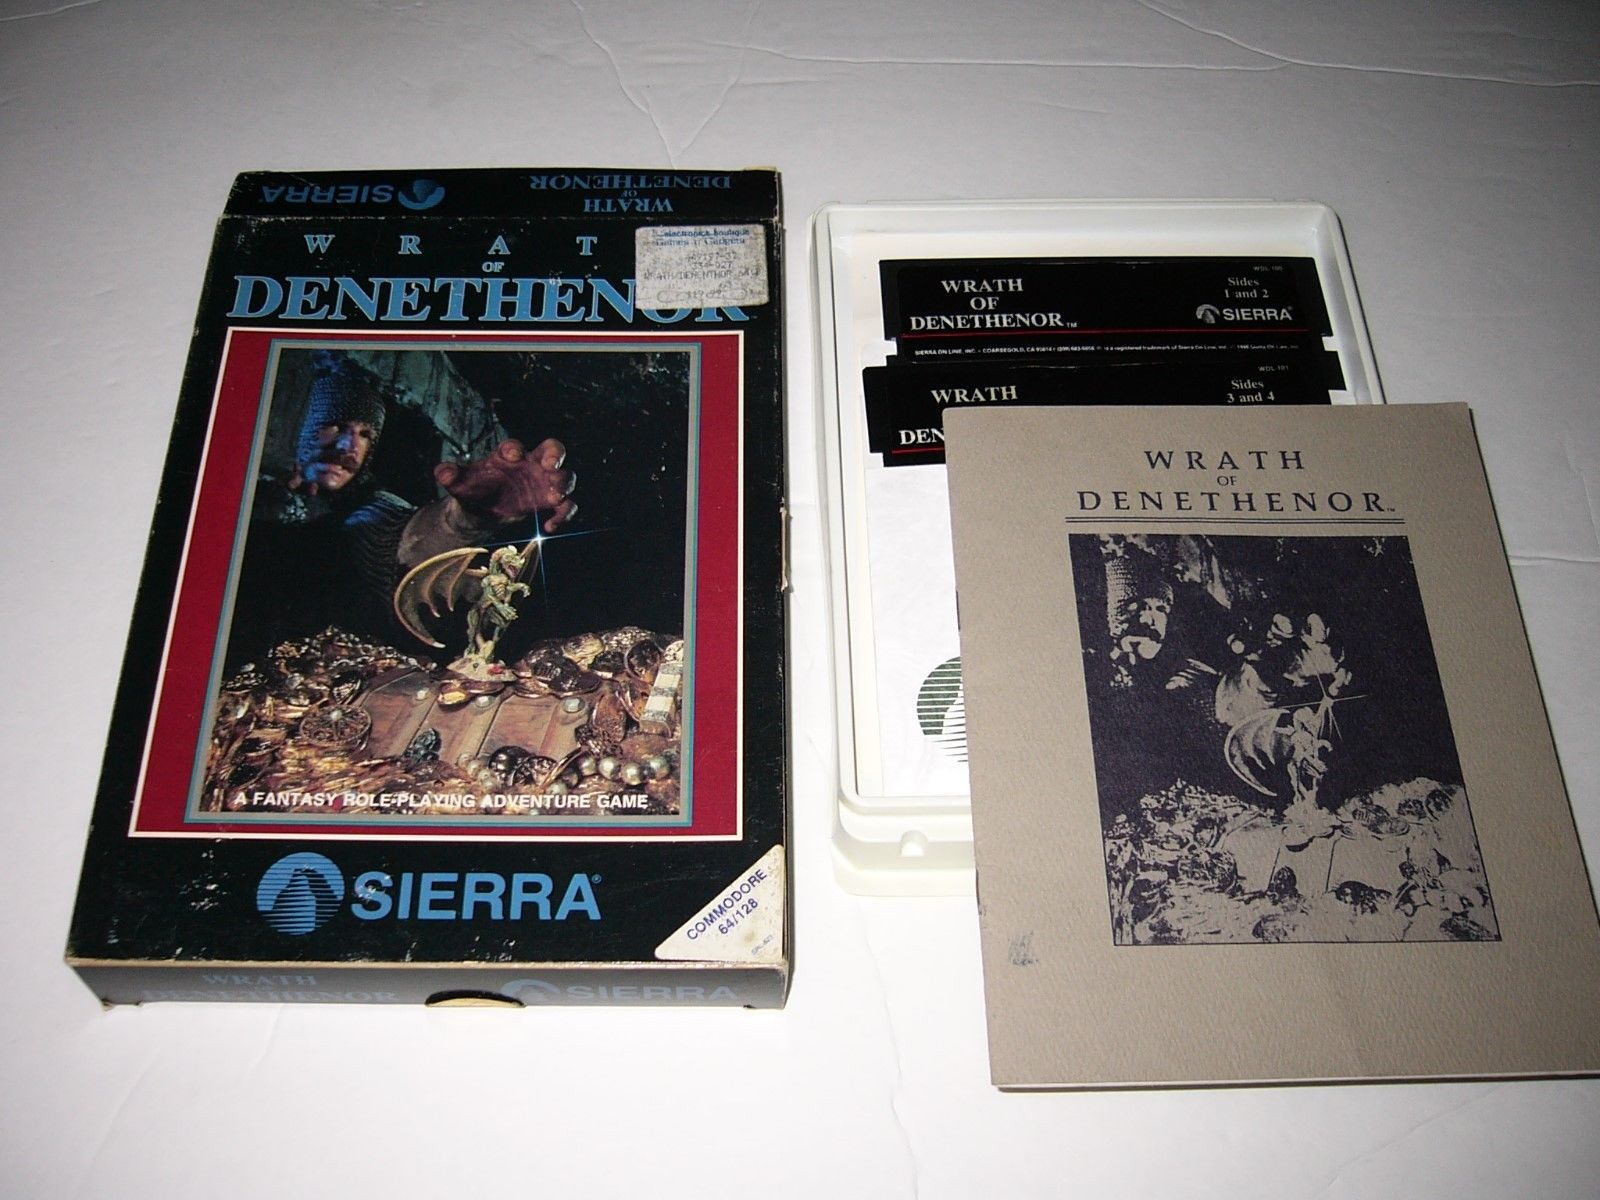 Retro Treasures: The Wrath of Denethenor (Commodore 64/128)